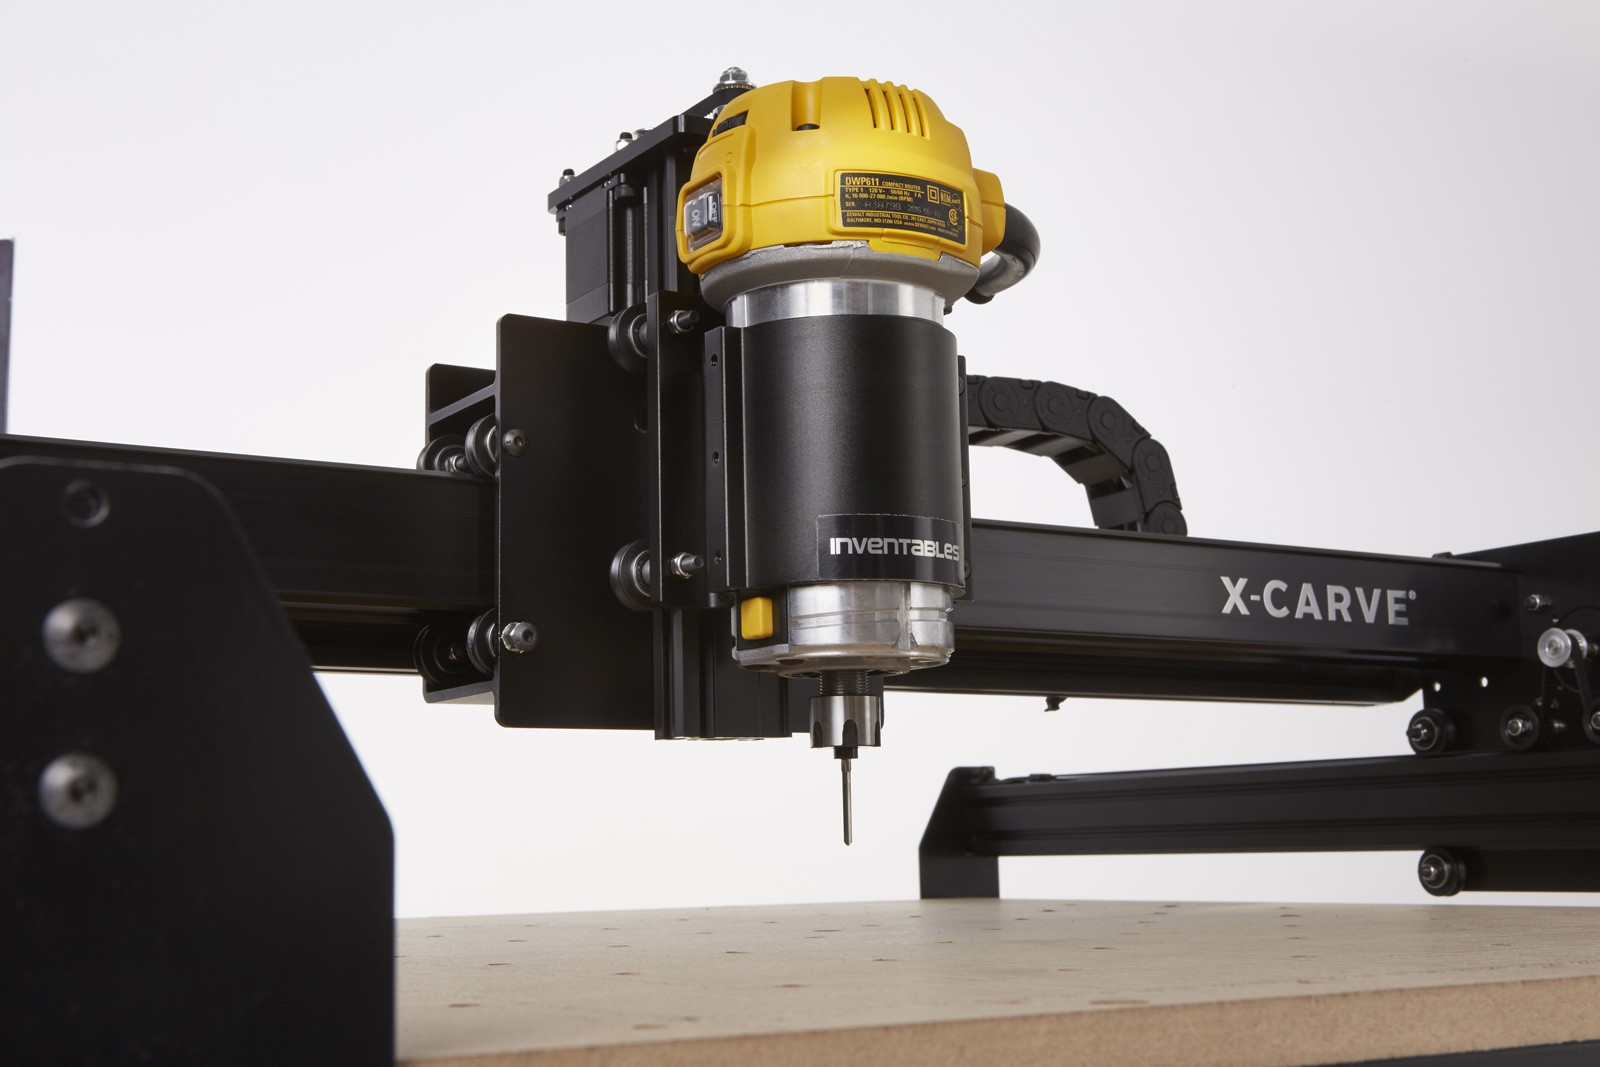 Learn about new X-Carve CNC router at Idea Studio